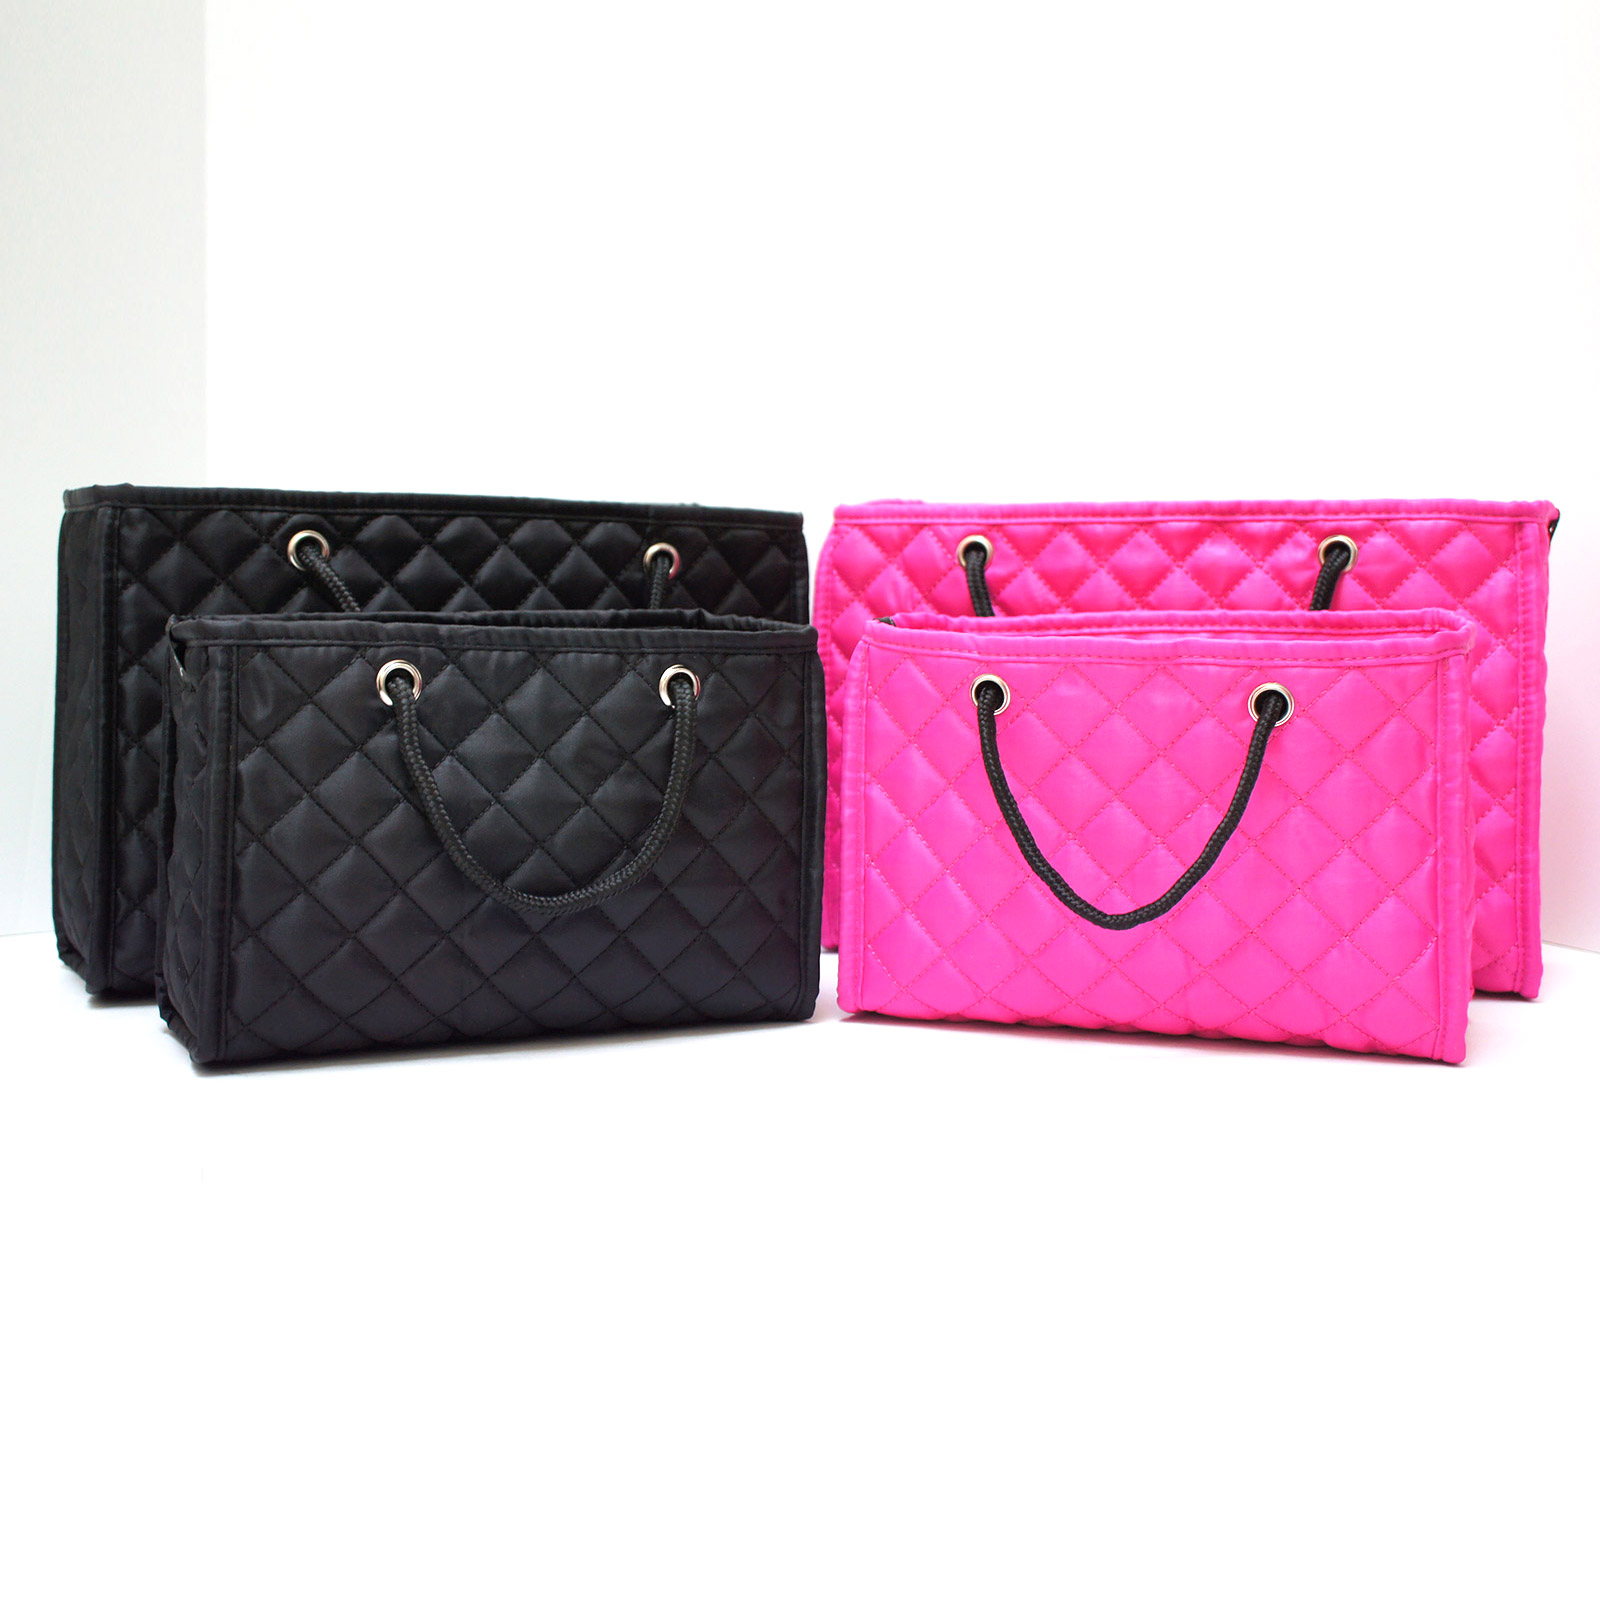 18f45f794a93e Chic Quilted ZOE Handbag Organizer Inserts with REMOVABLE BASE Fit  Balenciaga Bags